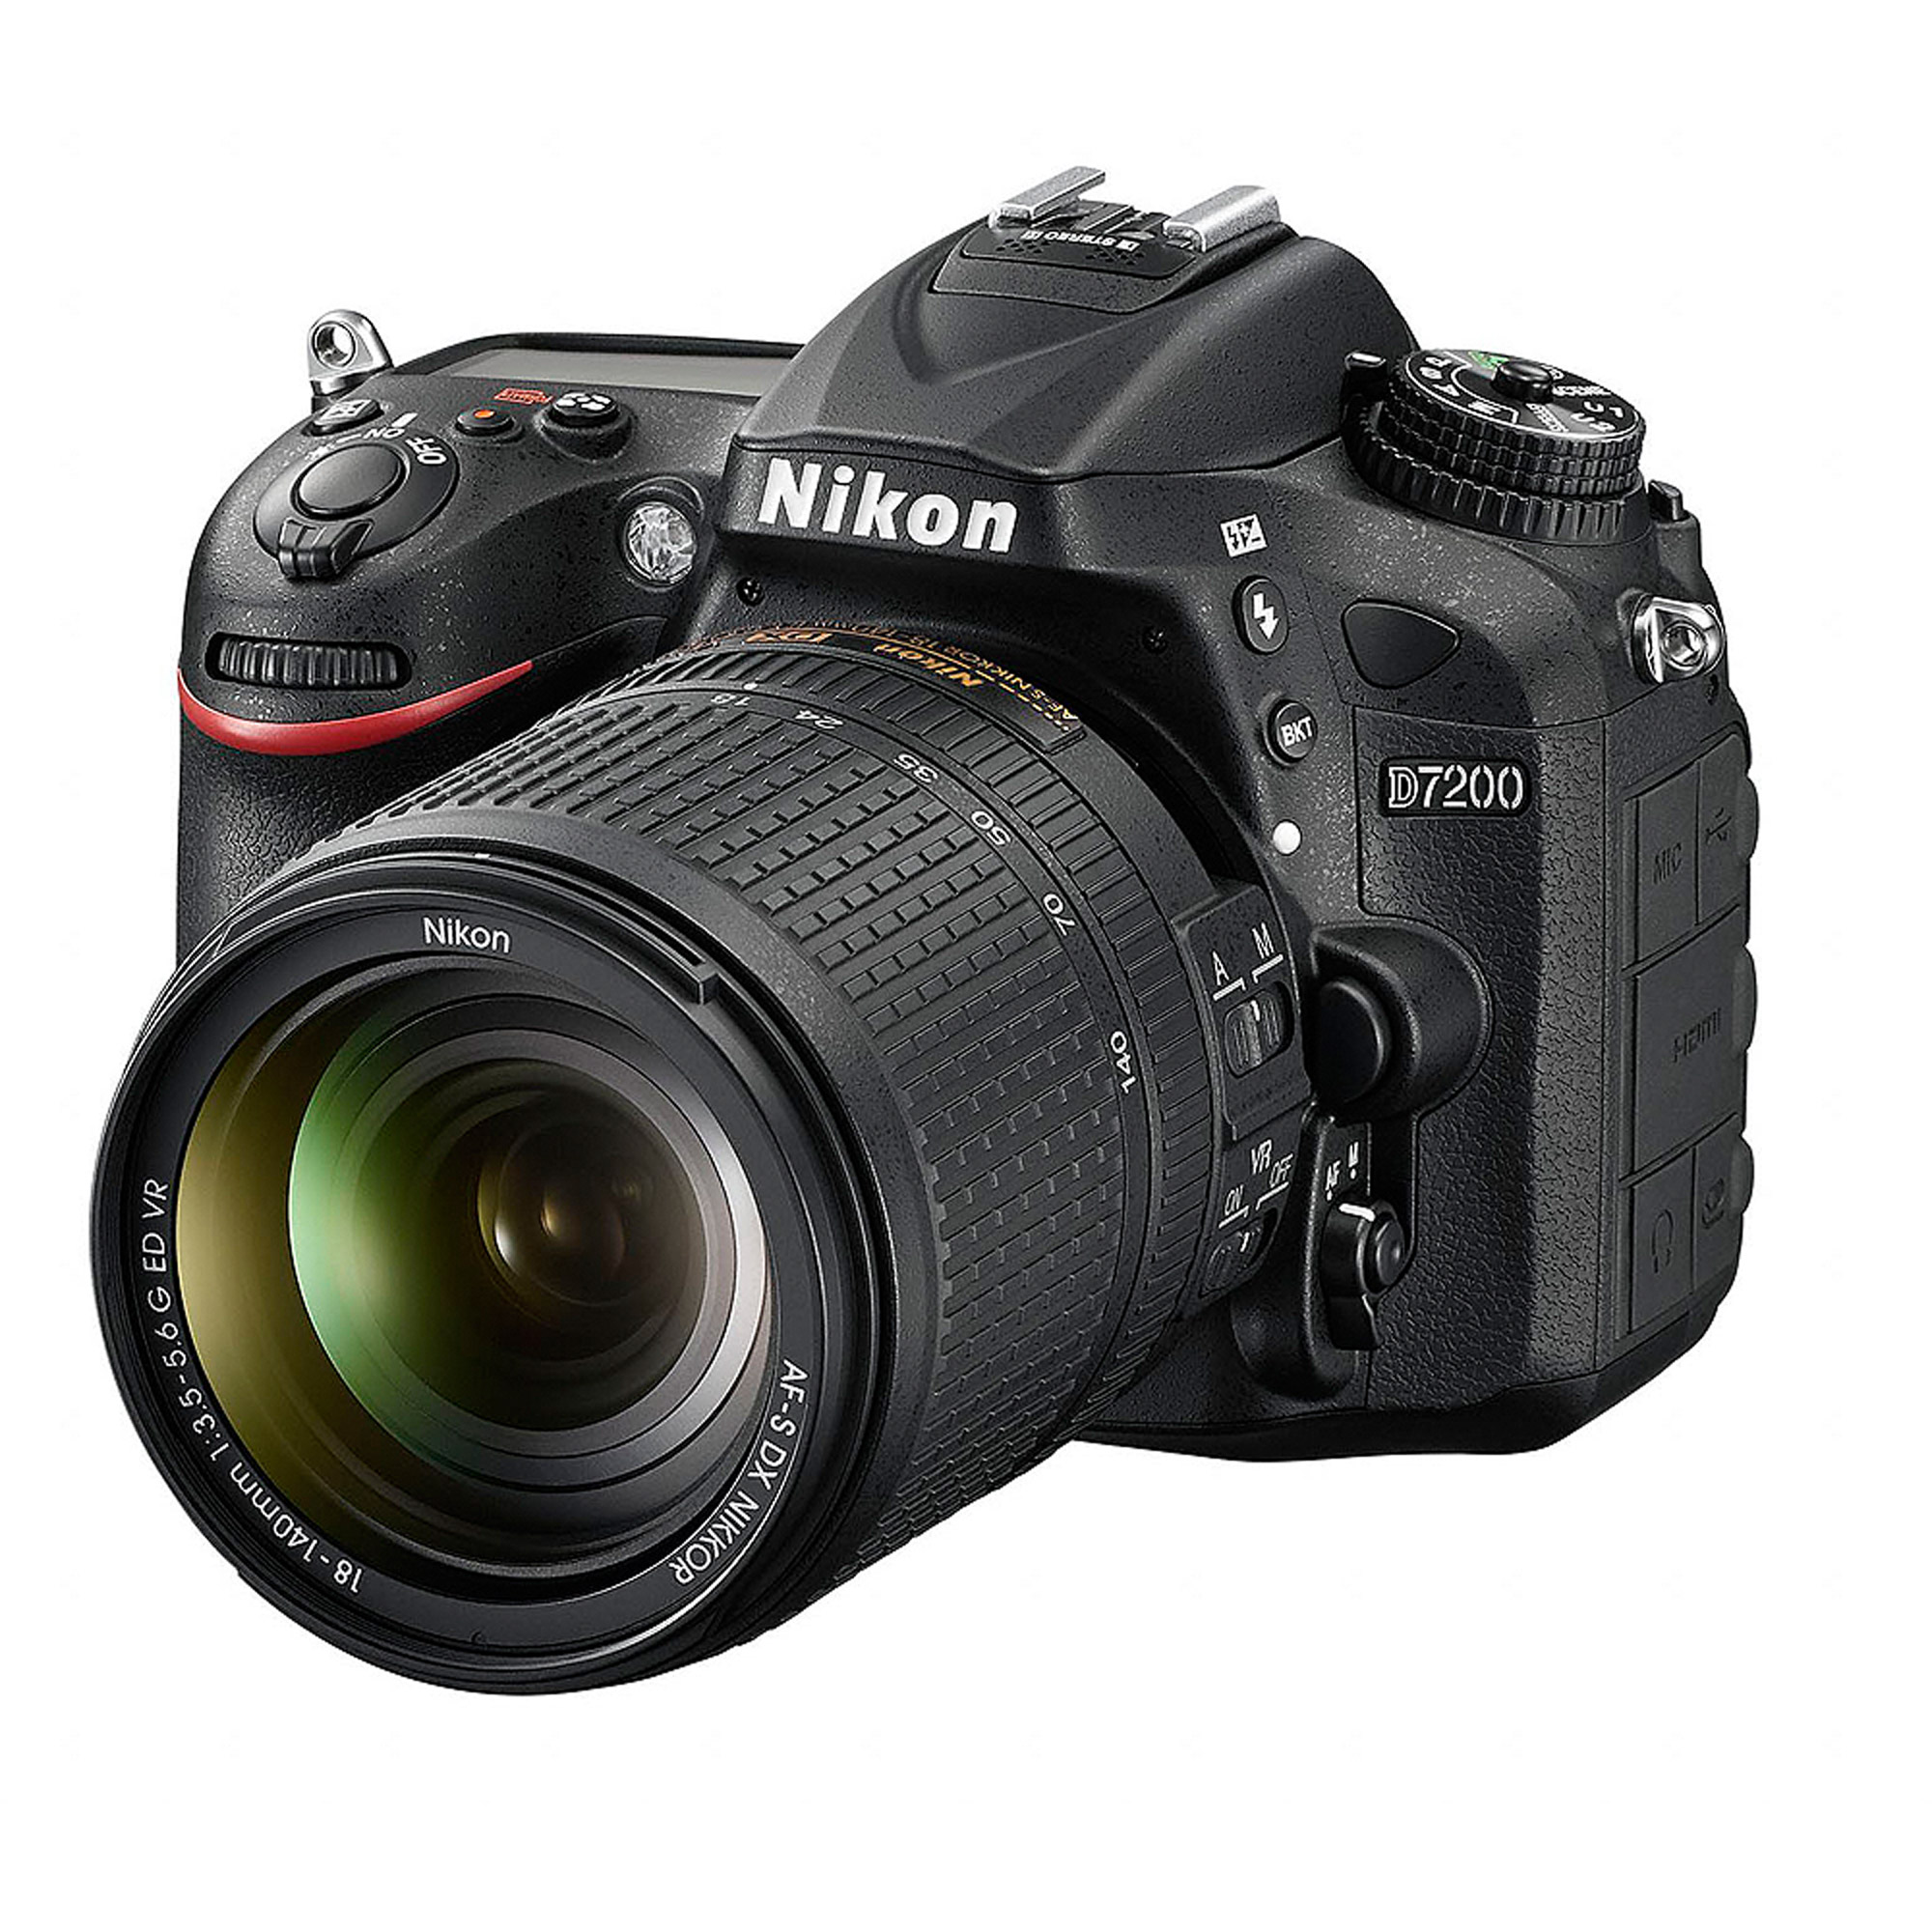 Nikon Black D7200 DX Digital SLR Camera with 24.2 Megapixels and 18-140mm Lens Included